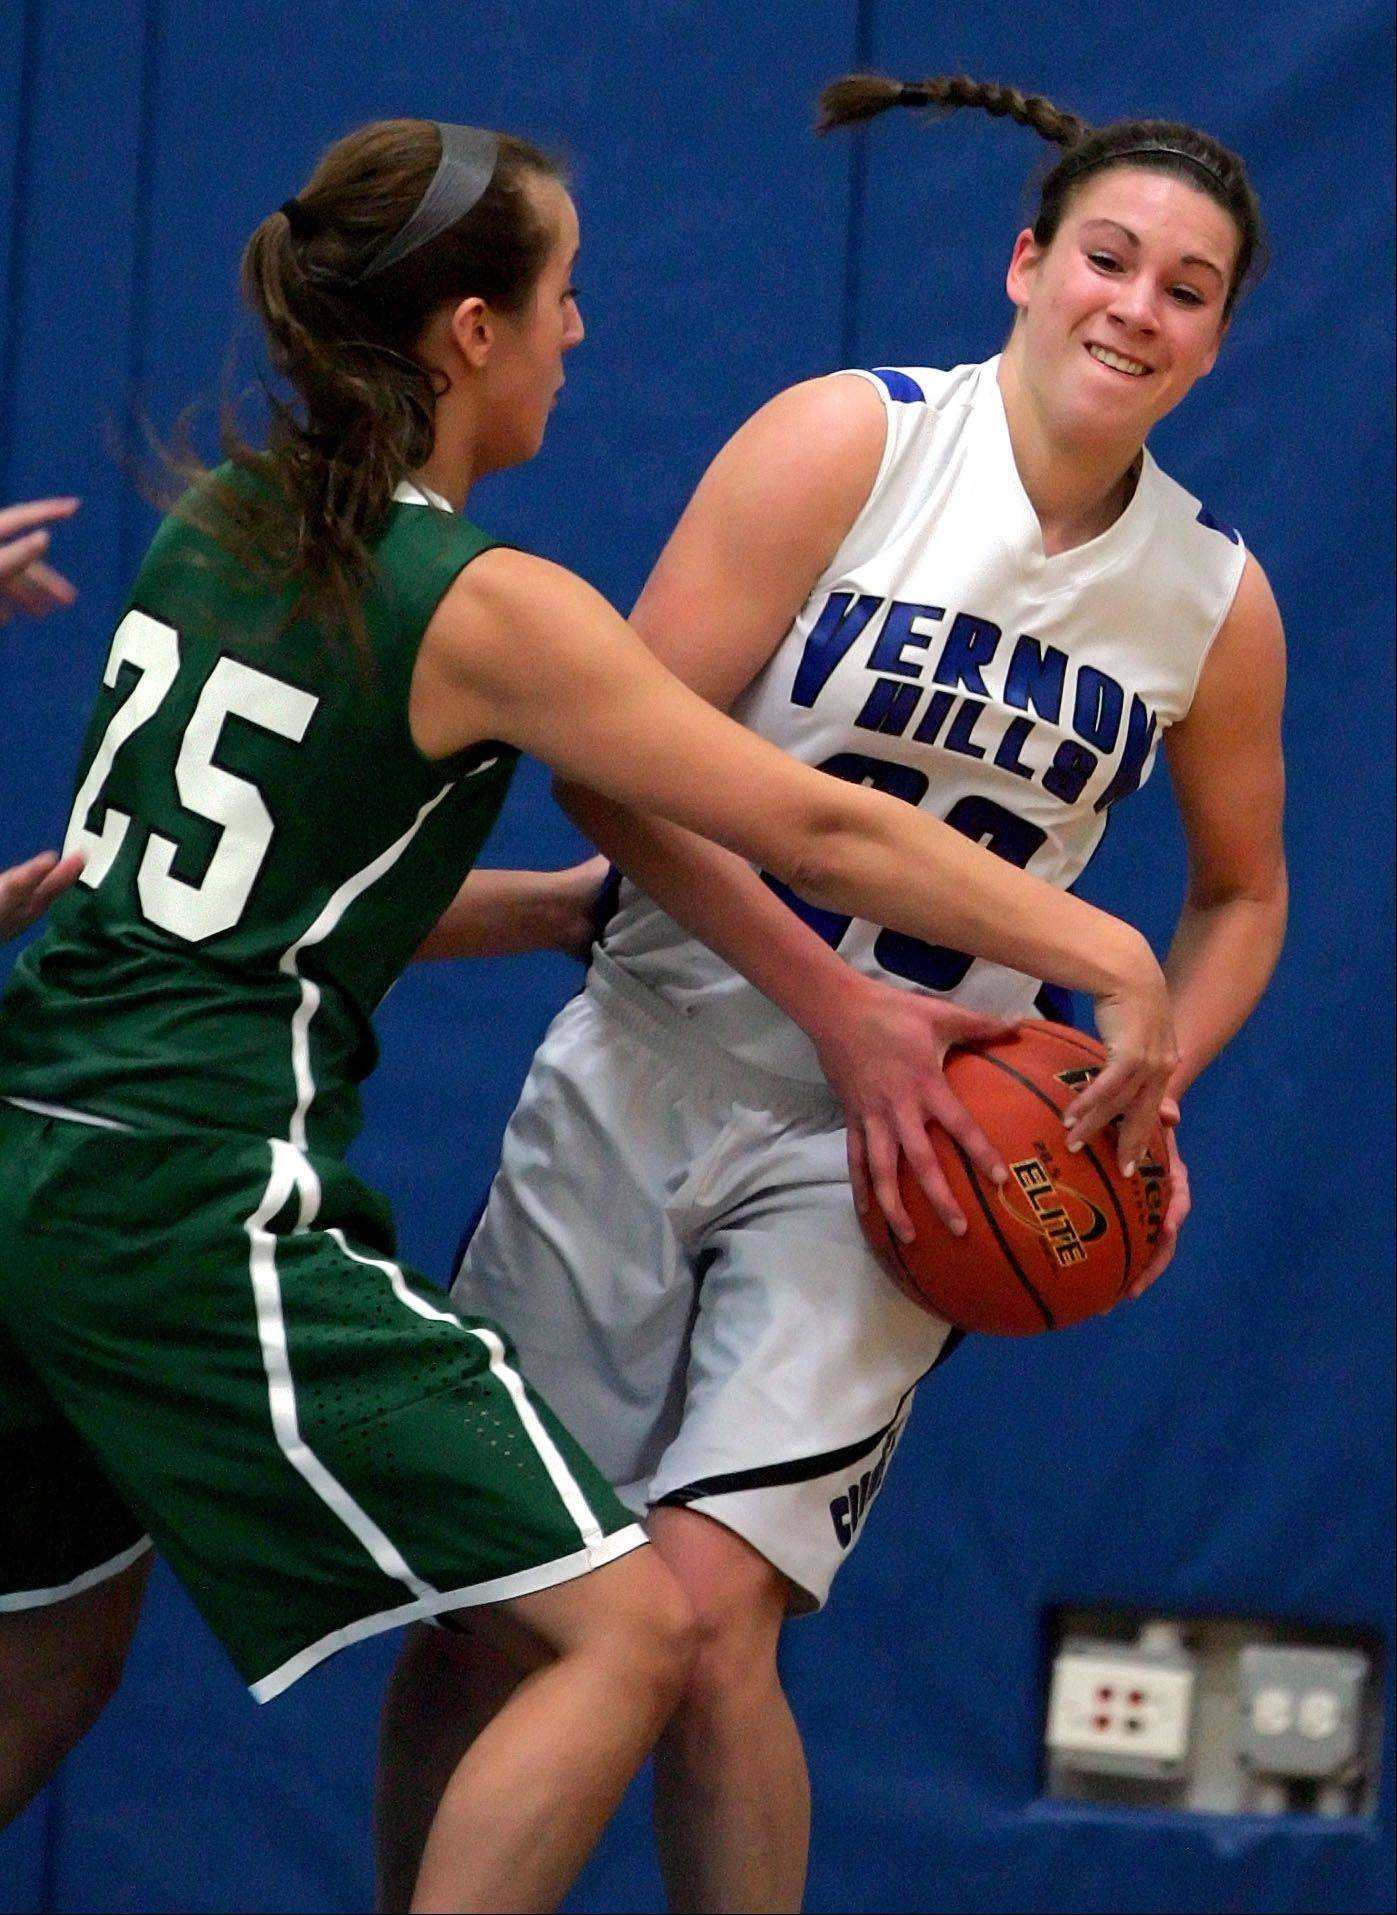 Vernon Hills' Brie Bahlmann, right, looks to pass as Grayslake Central's Taylor Peterson defends Tuesday night at Vernon Hills High School.